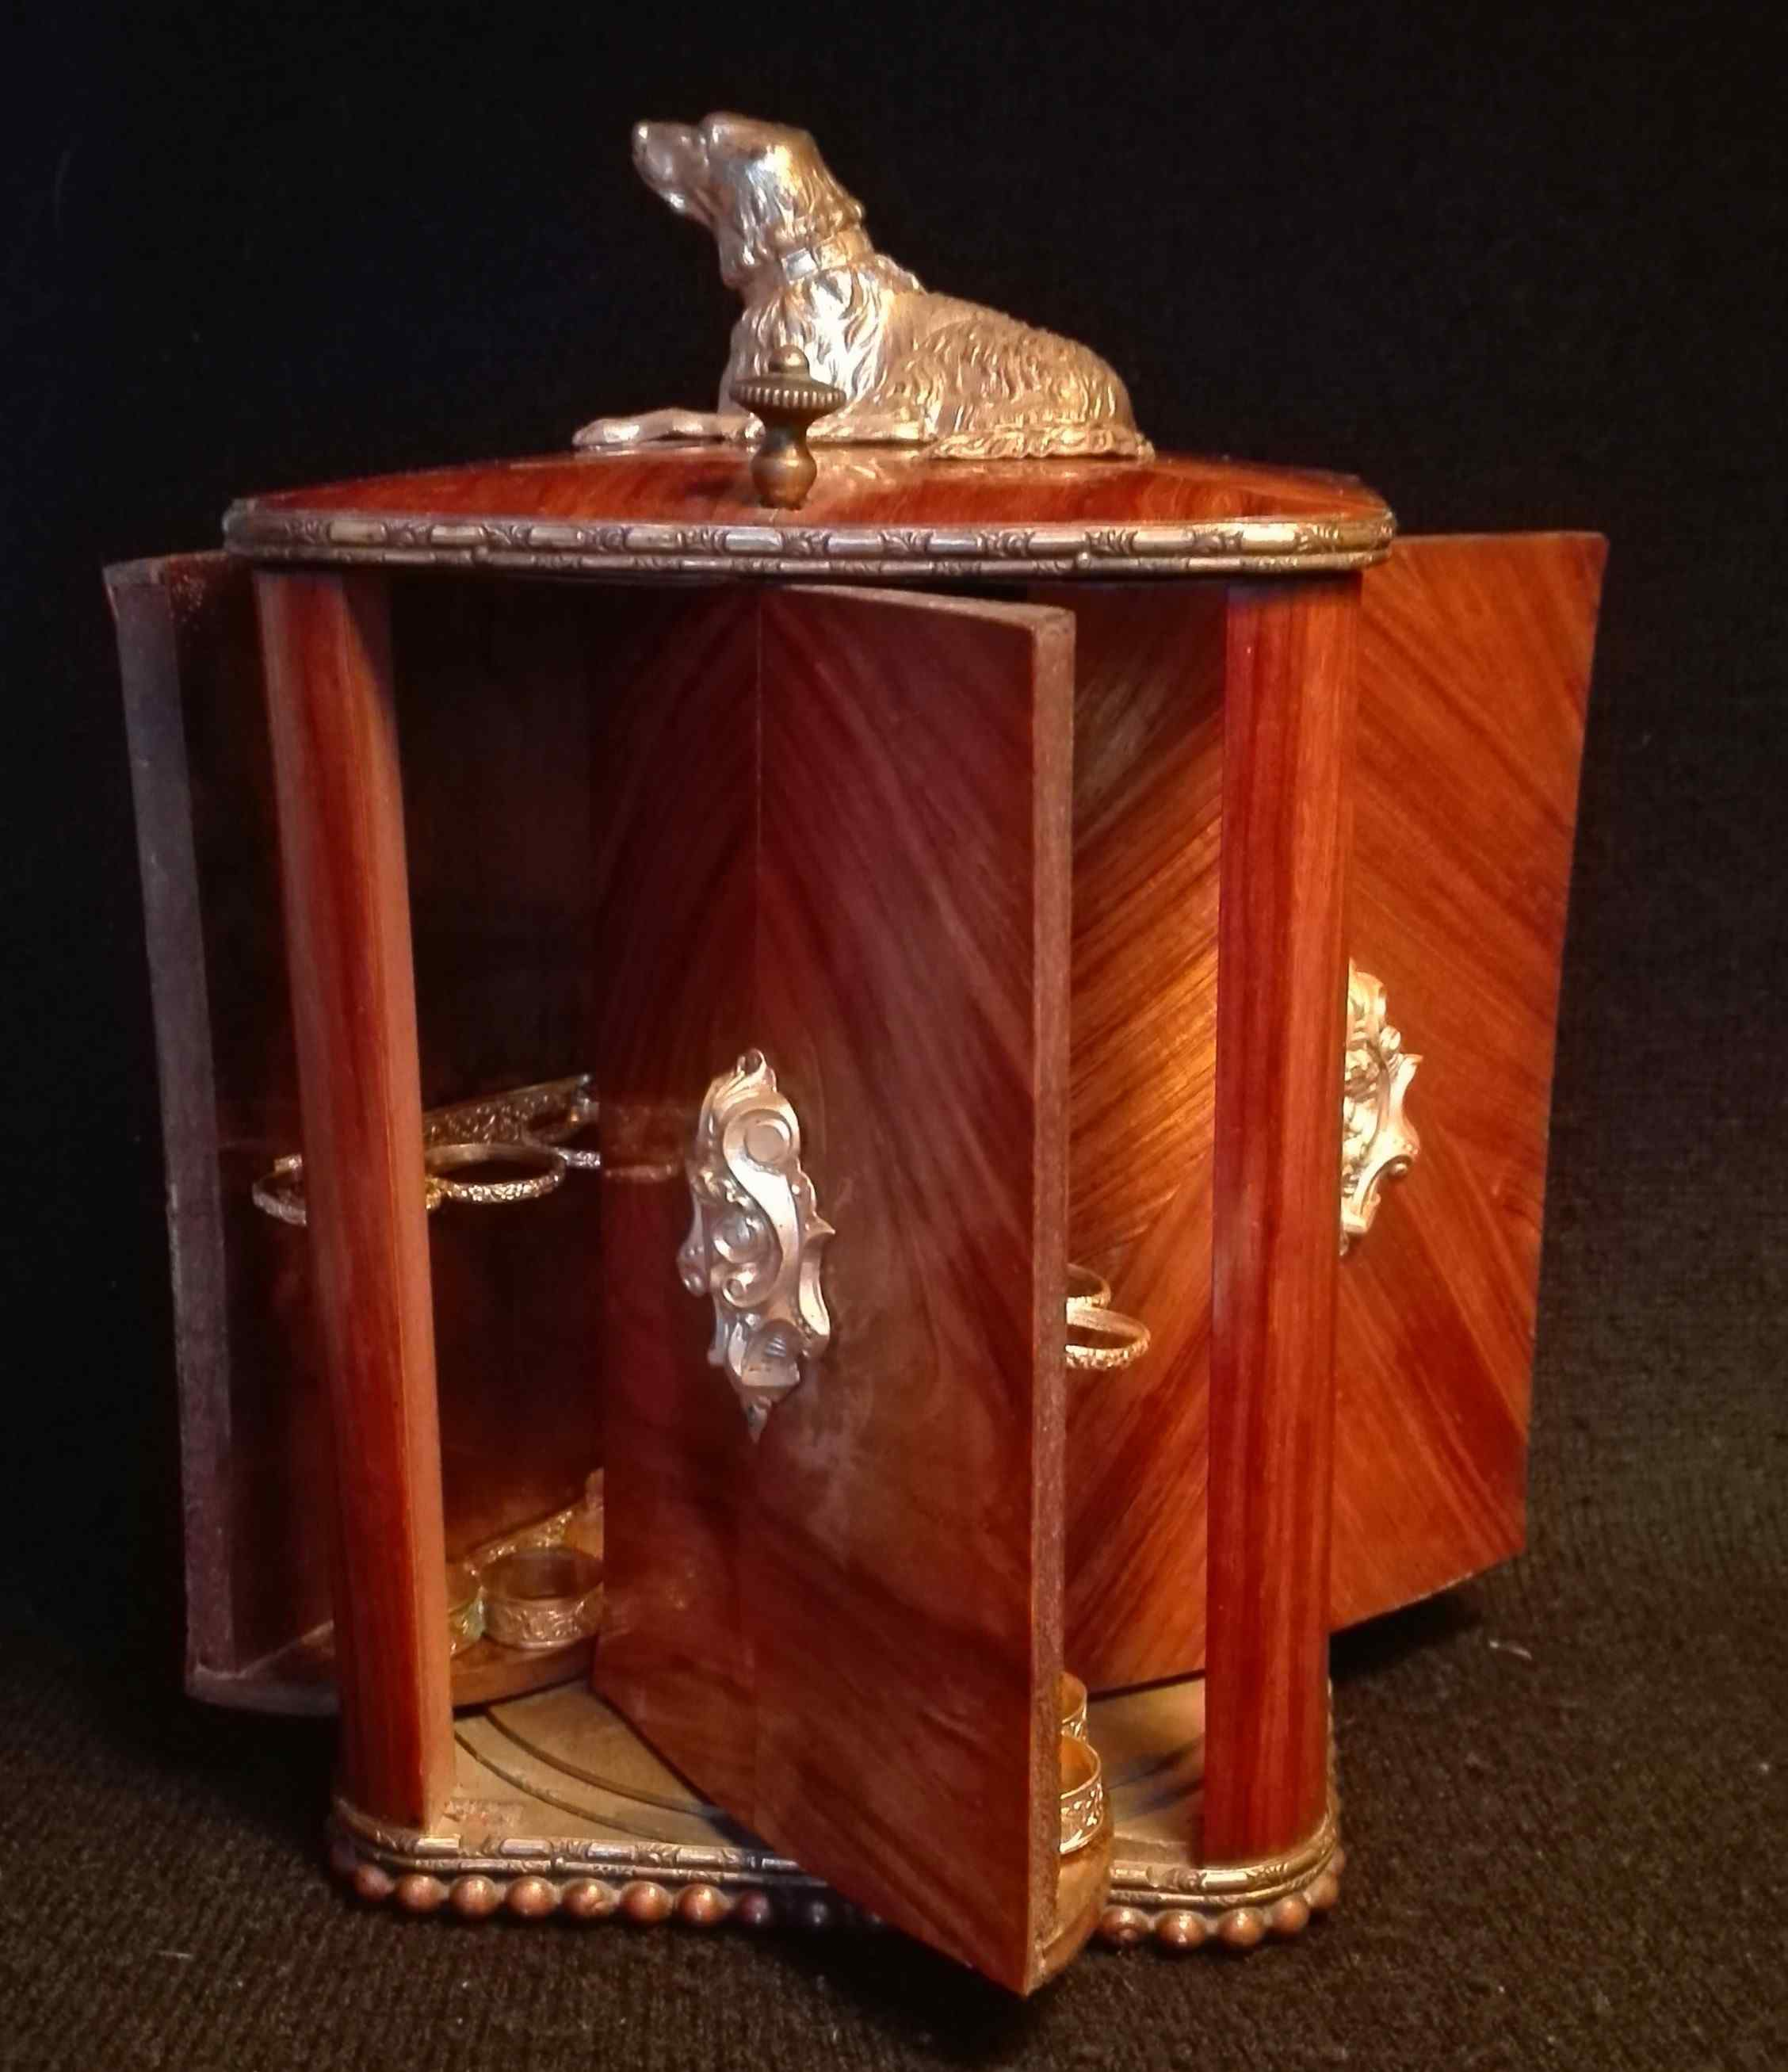 Cigar humidor made of rosewood and golden brass